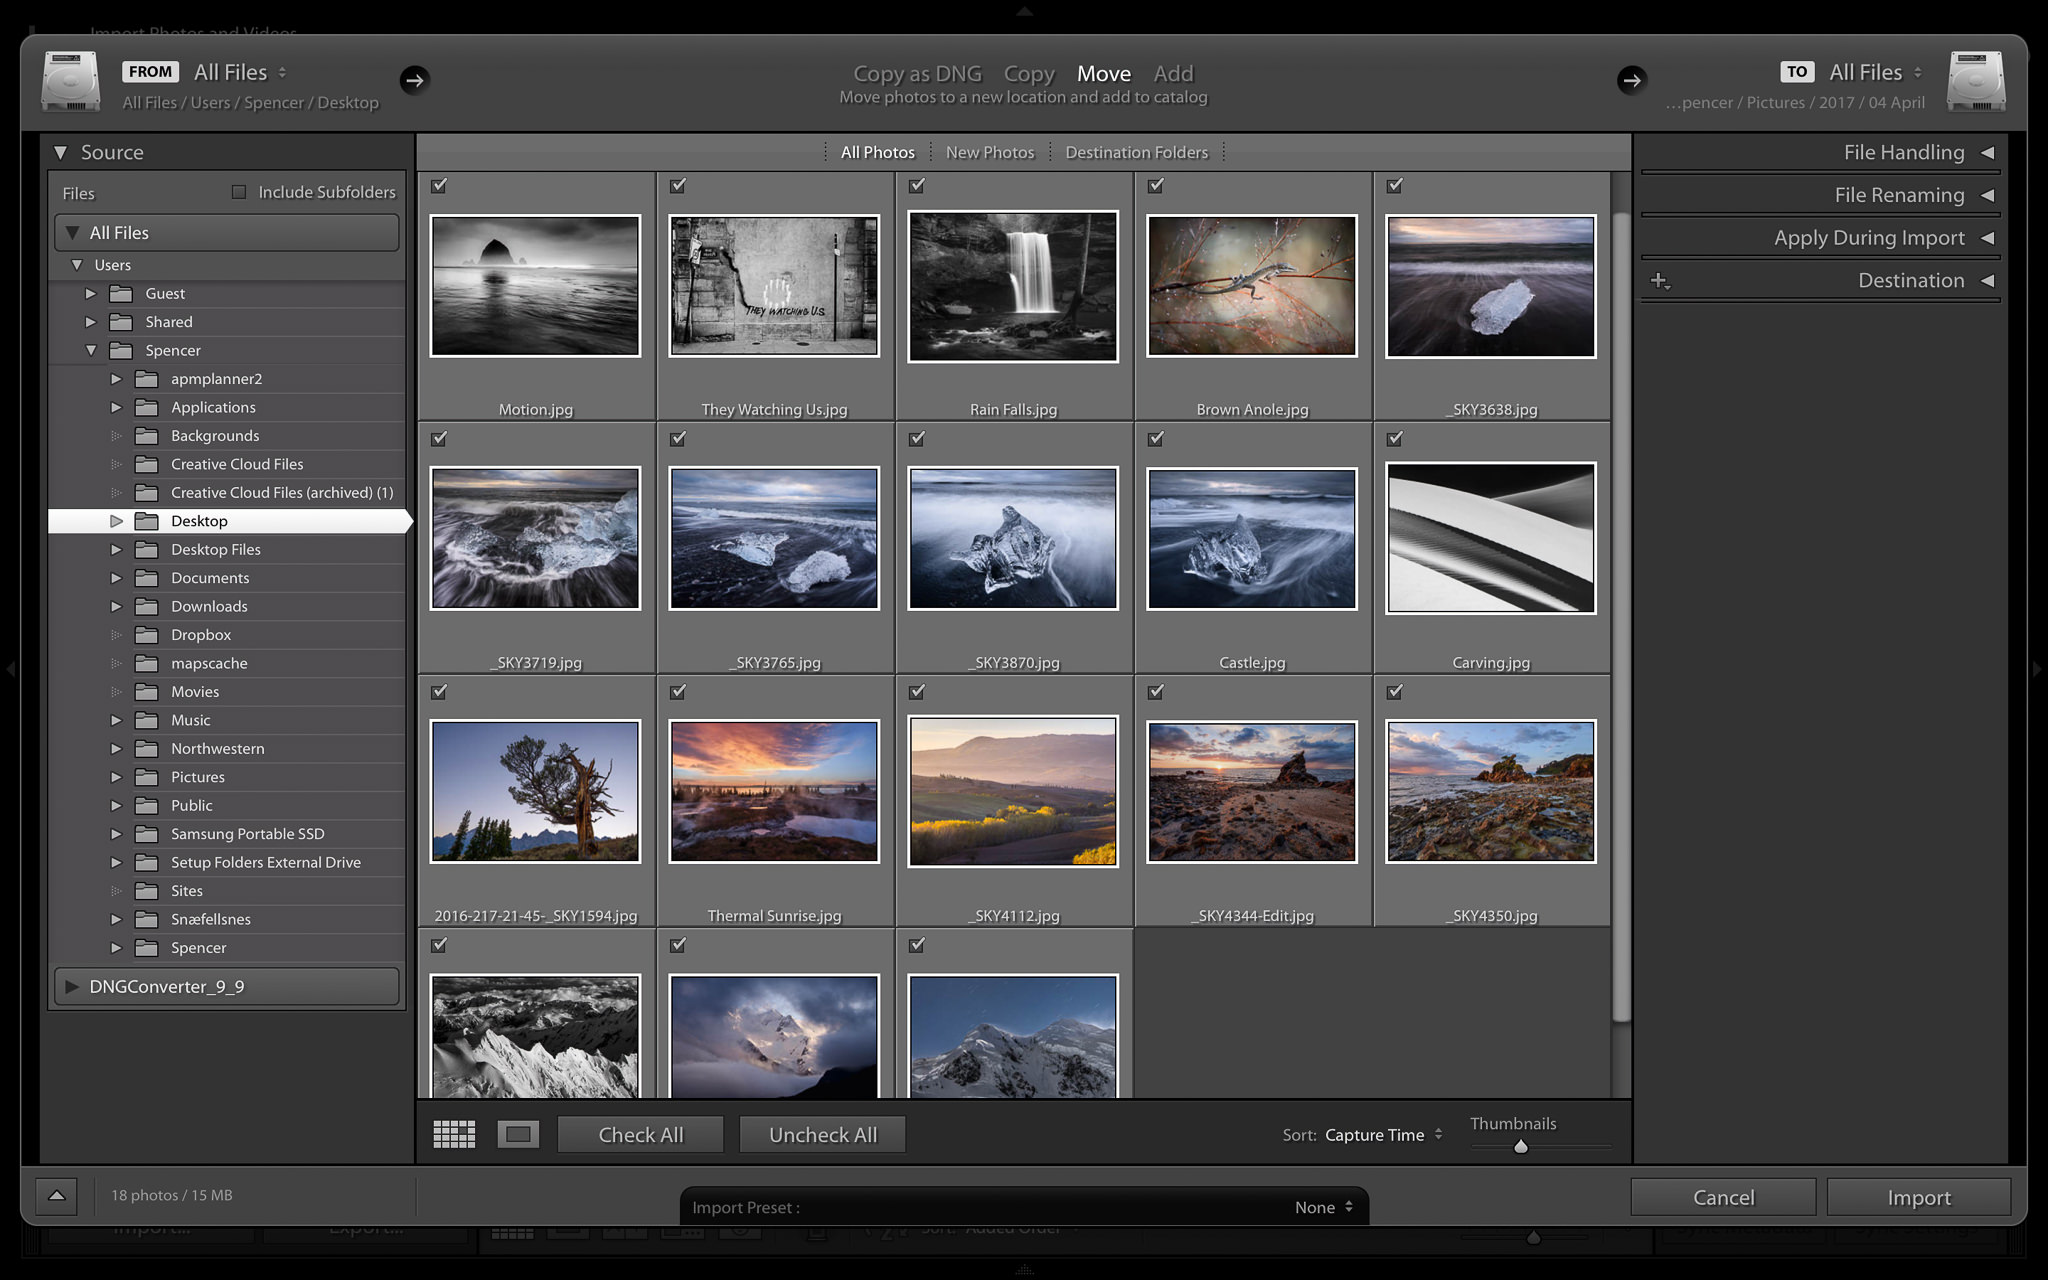 How to Use Lightroom: A Complete Tutorial for Beginners